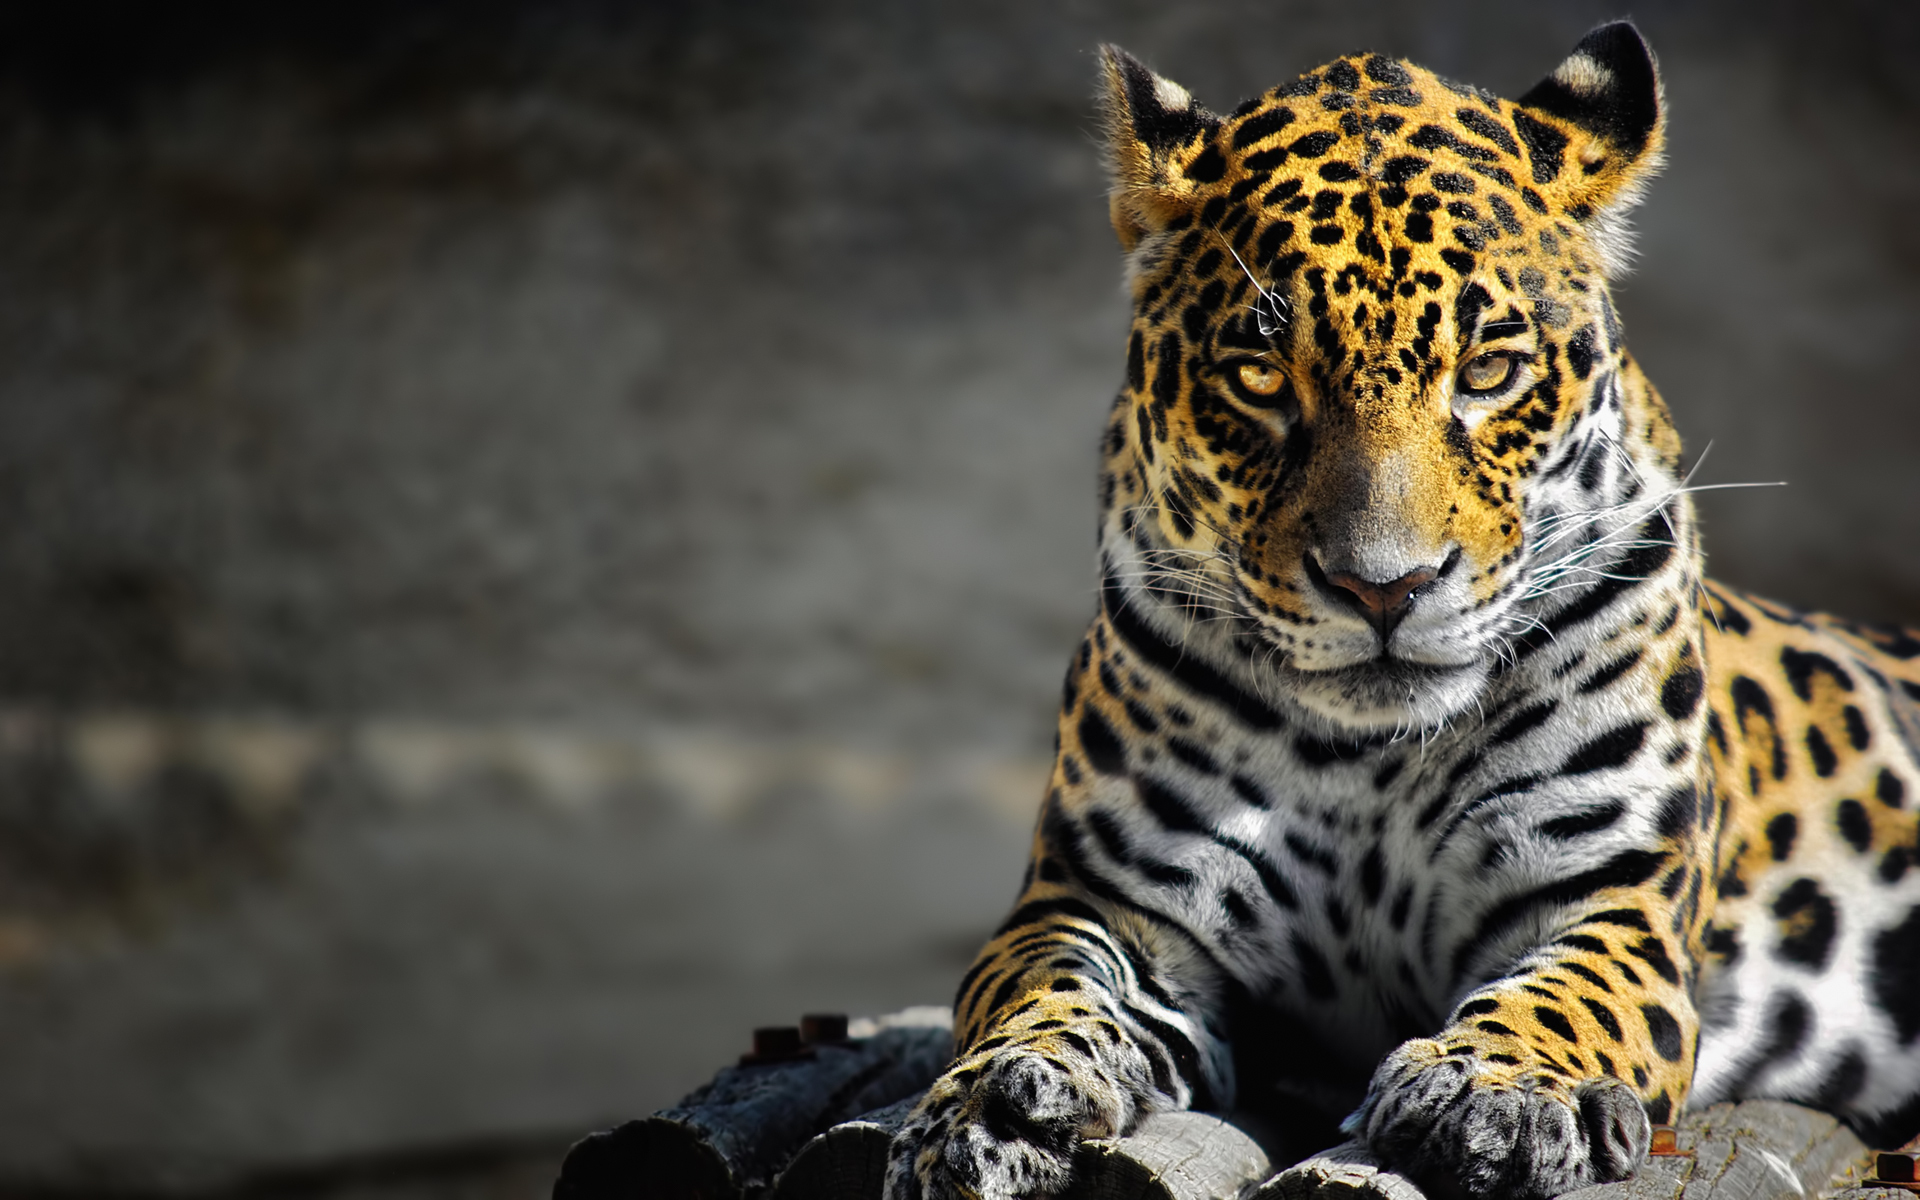 Animals Jaguars Wallpapers Hd Desktop And Mobile: Jaguar Wallpaper Animal - HD Desktop Wallpapers